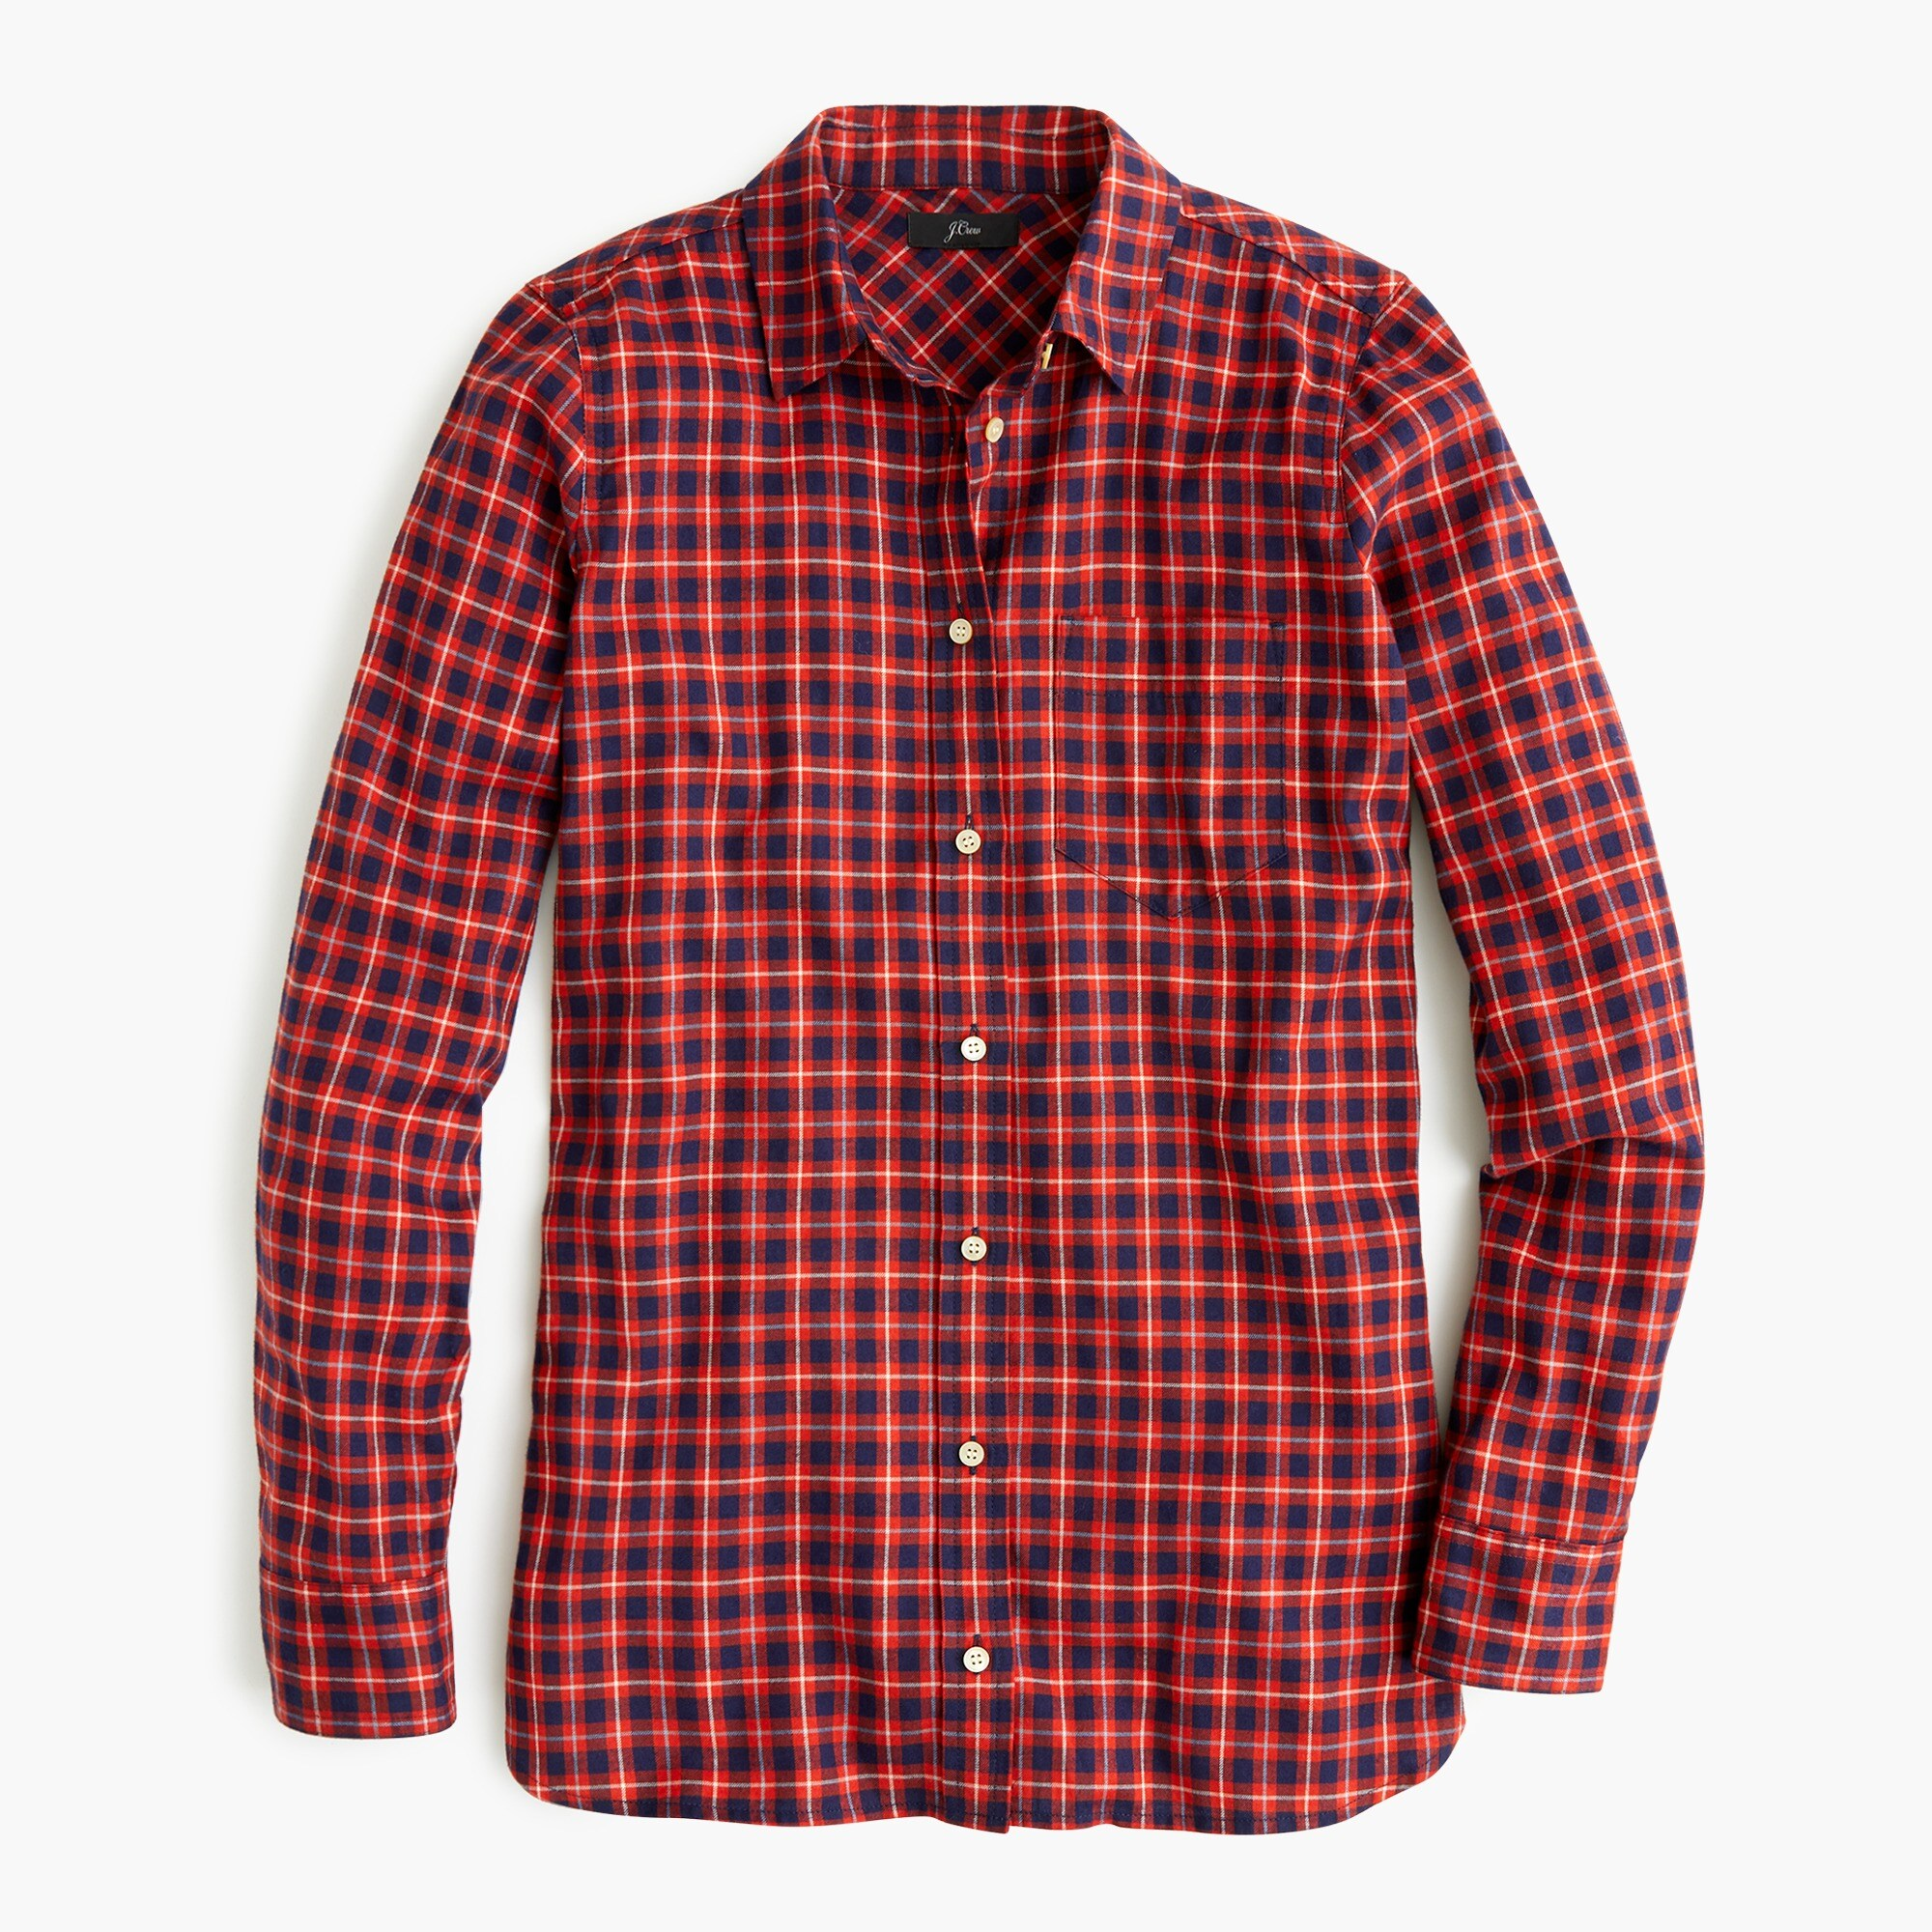 Classic-fit shirt in brushed twill flannel